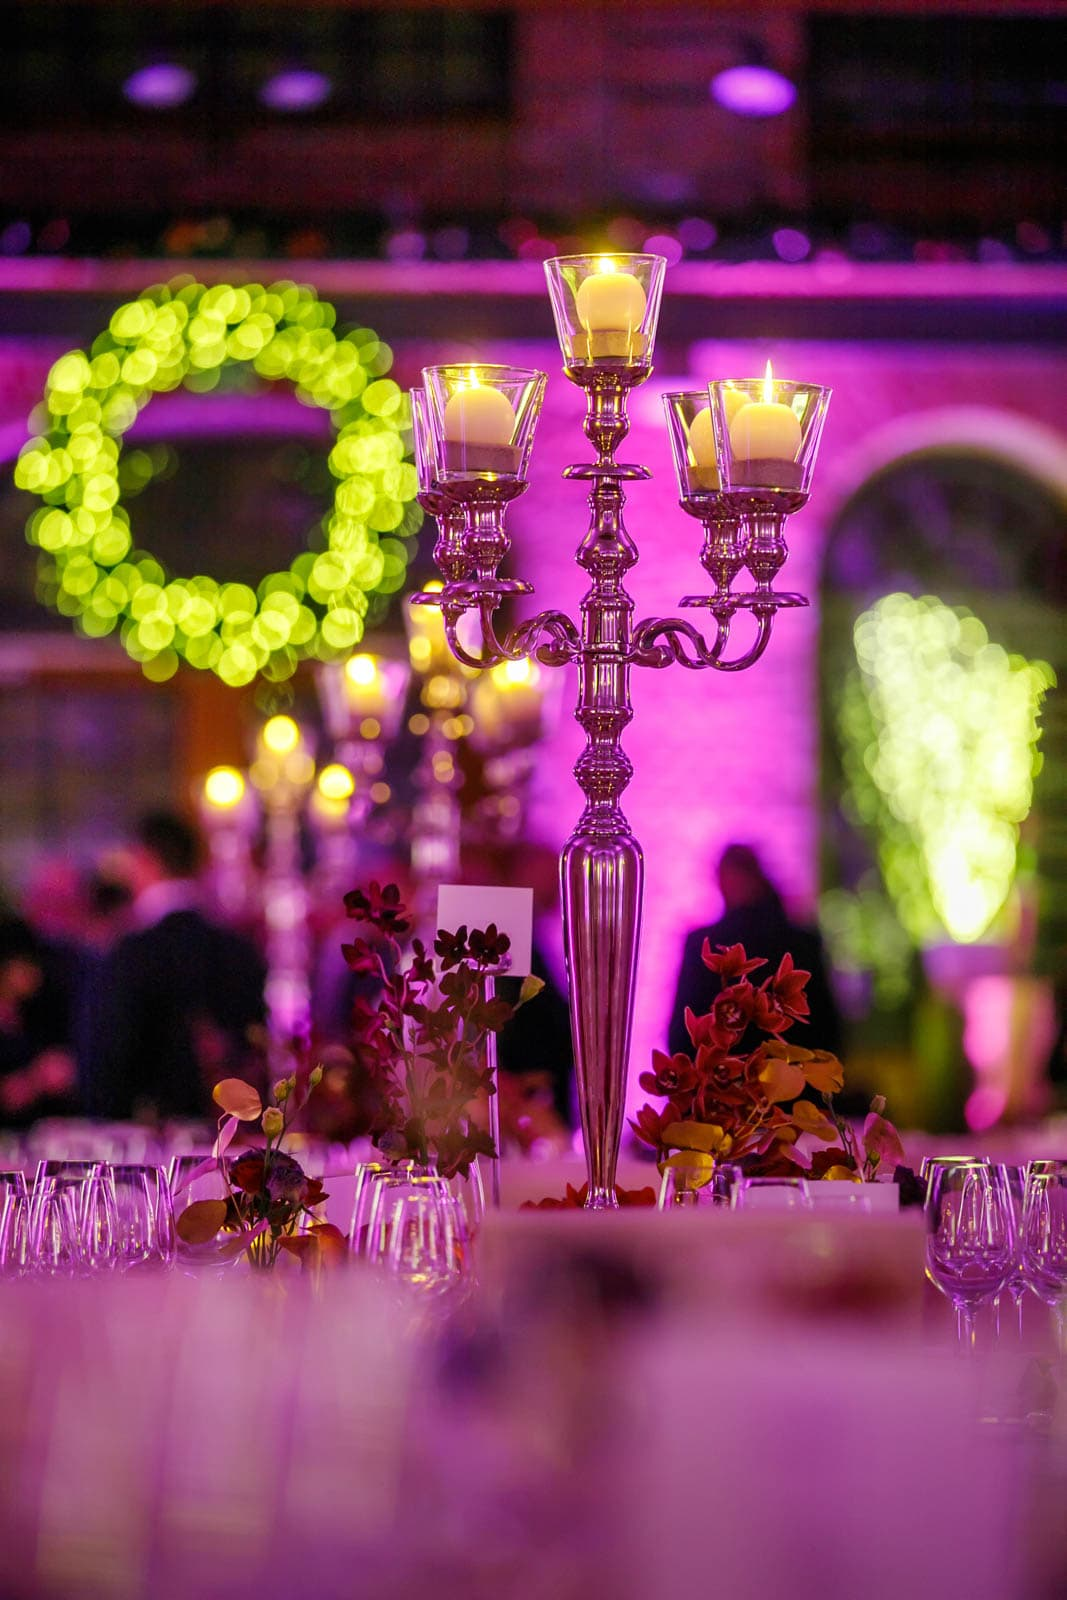 Bildbeispiel Eventfotograf für Catering in Berlin